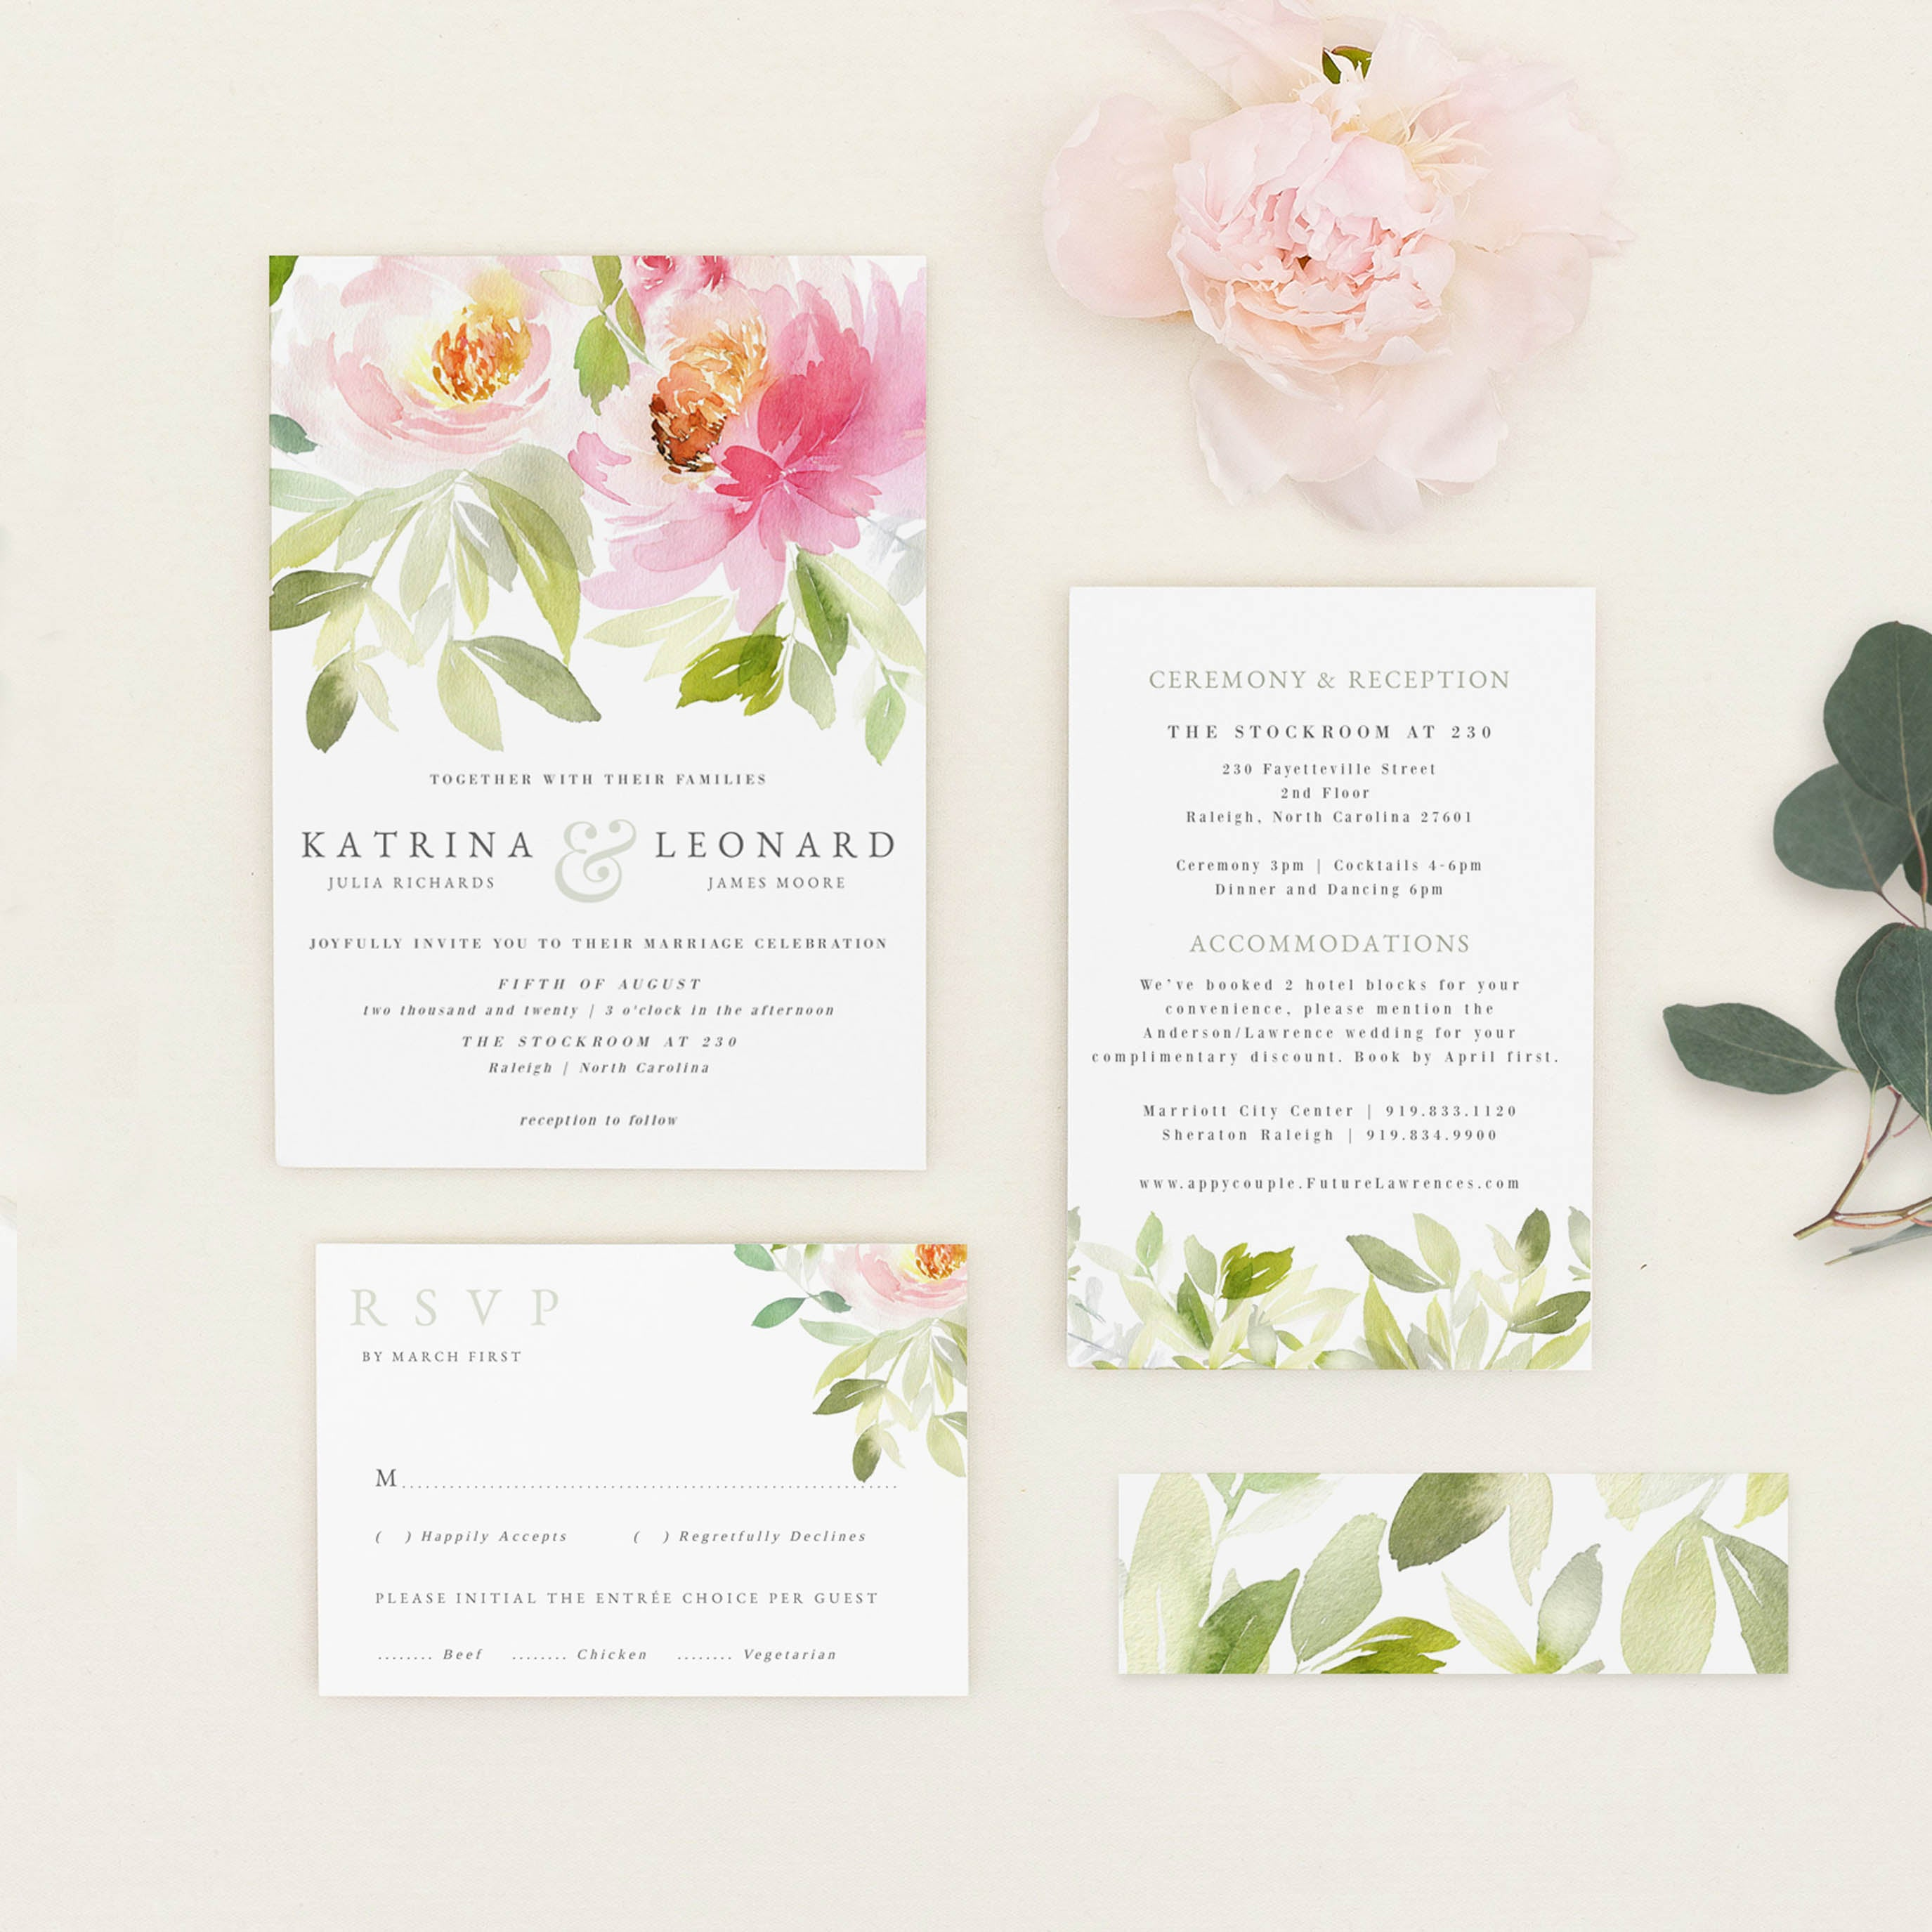 Blush Flower Pdf Wedding Invitation Template: Wedding Invitations With Flowers At Websimilar.org